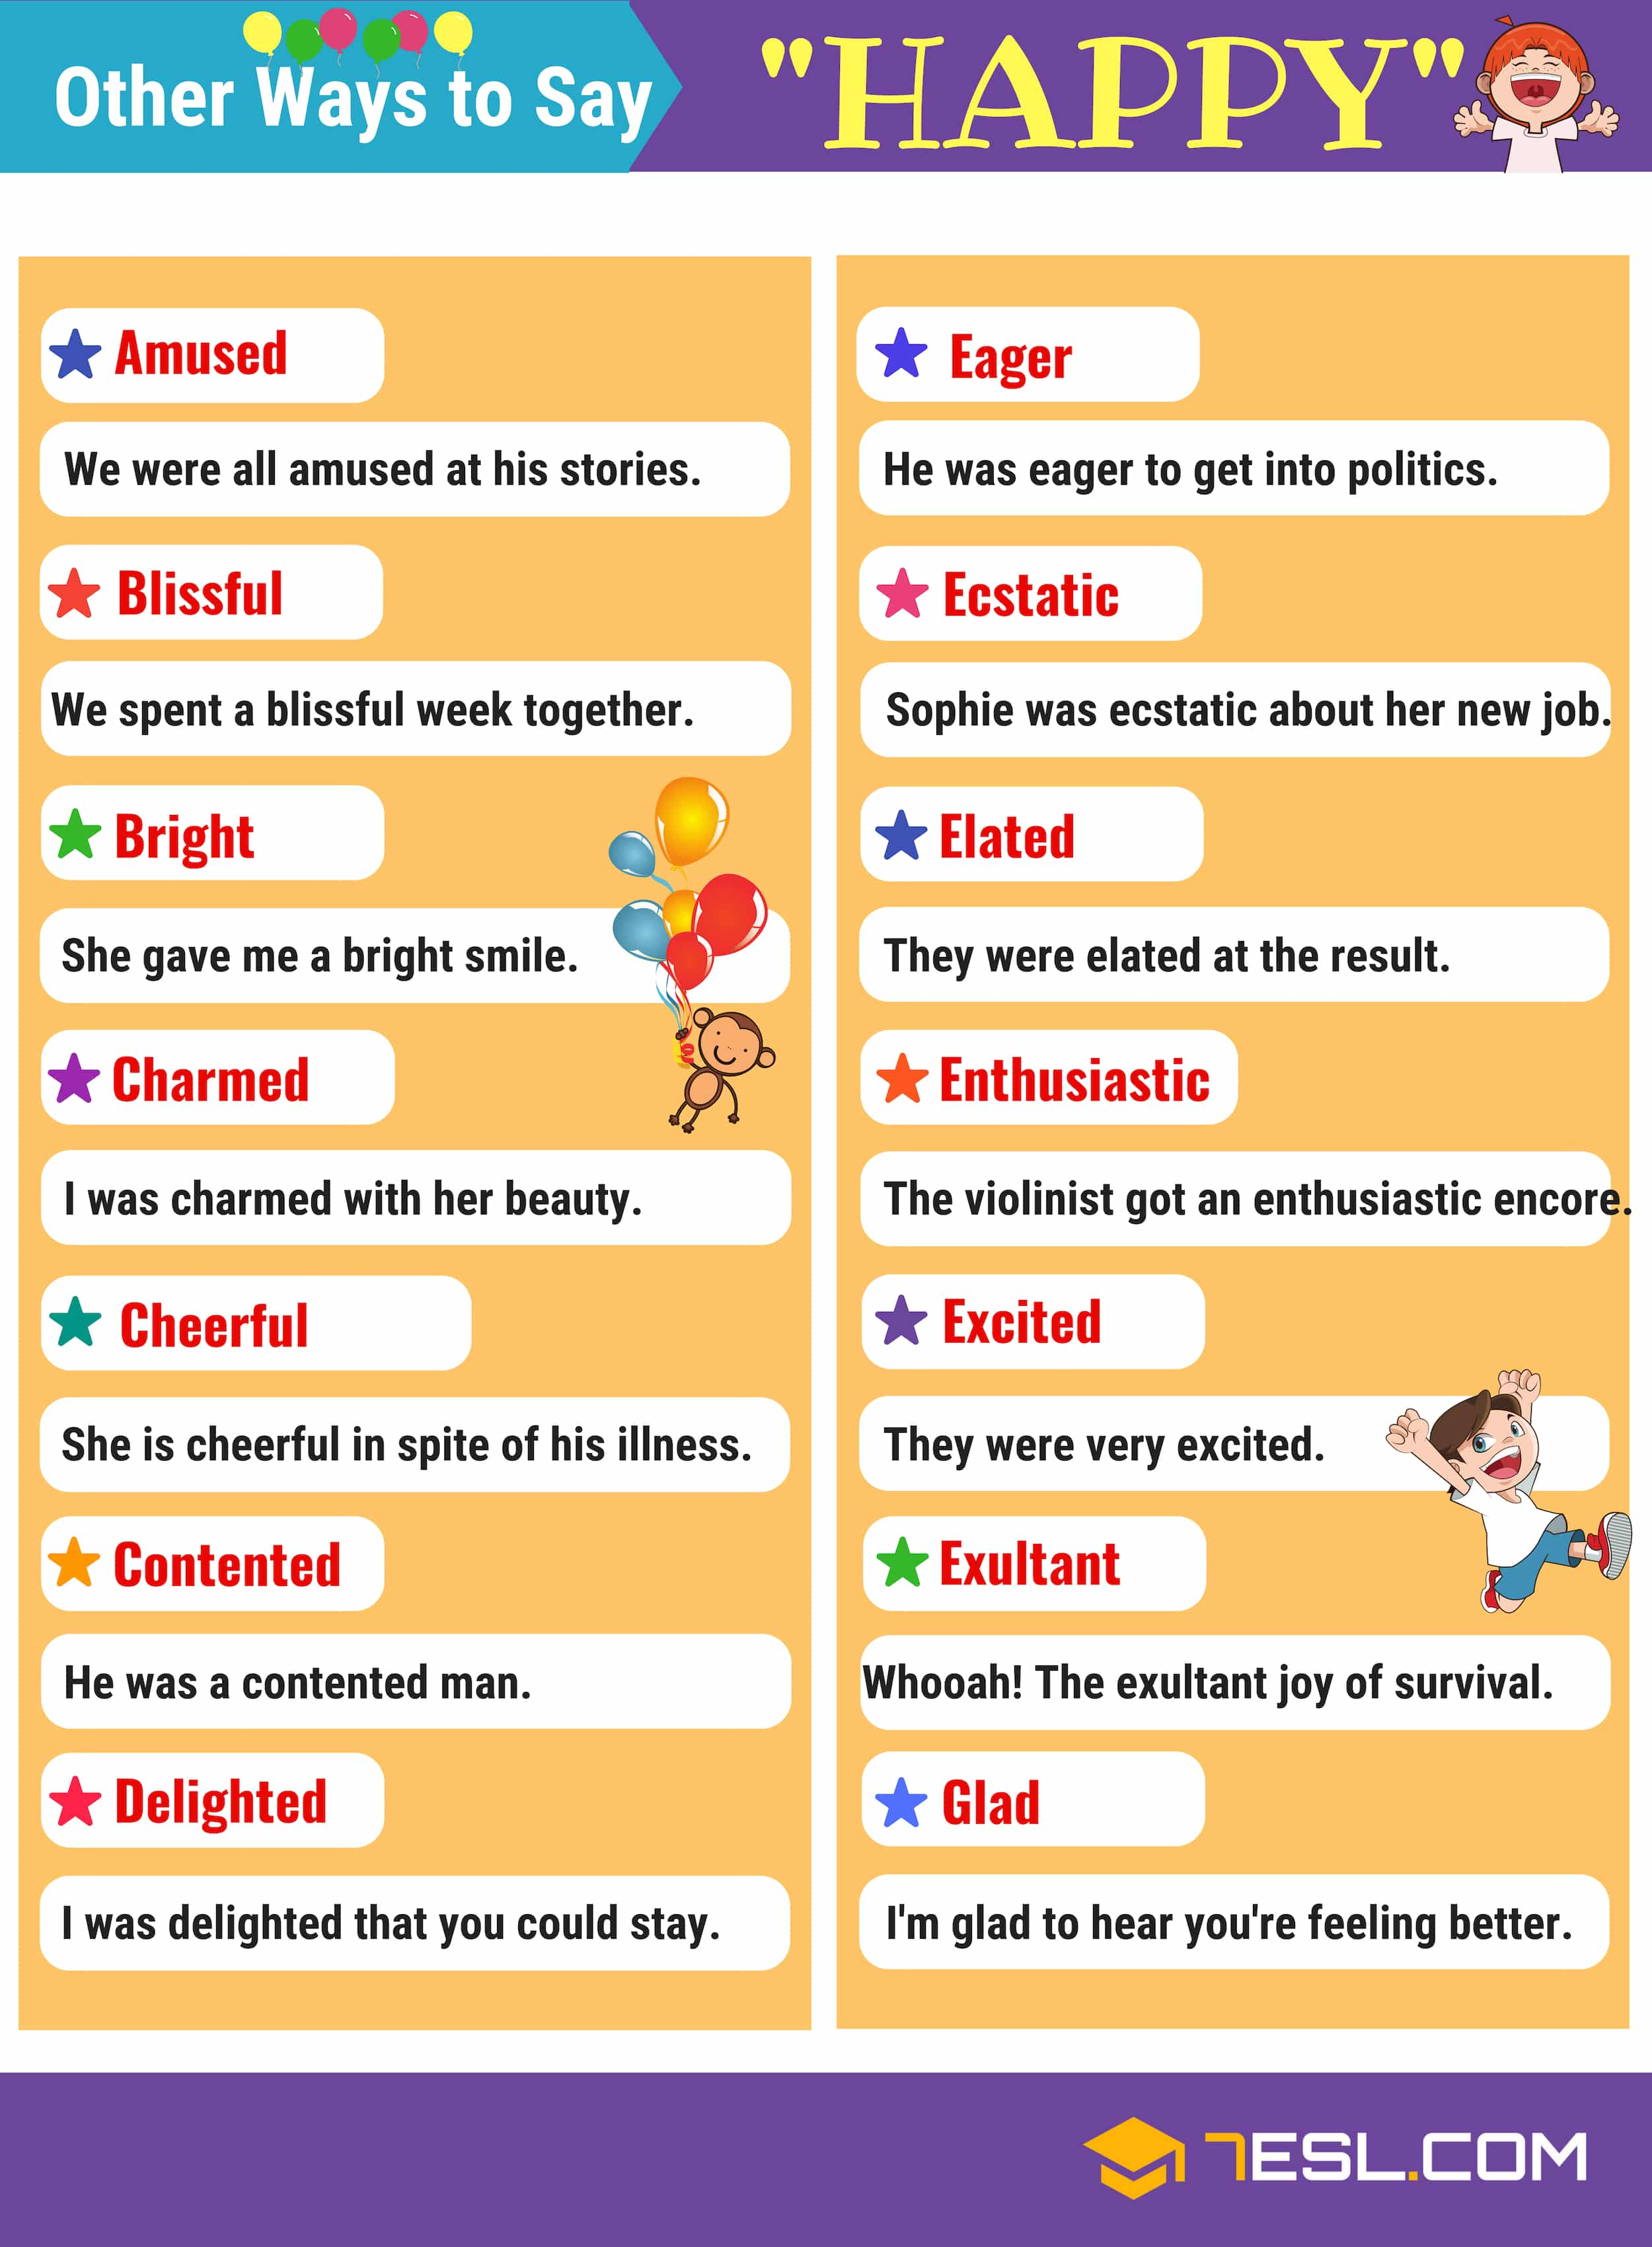 Synonyms for HAPPY!!! This page provides an useful list of Happy Synonyms in English with picture you can use to increase your English vocabulary. You'll also find example sentence to help show context for each word.